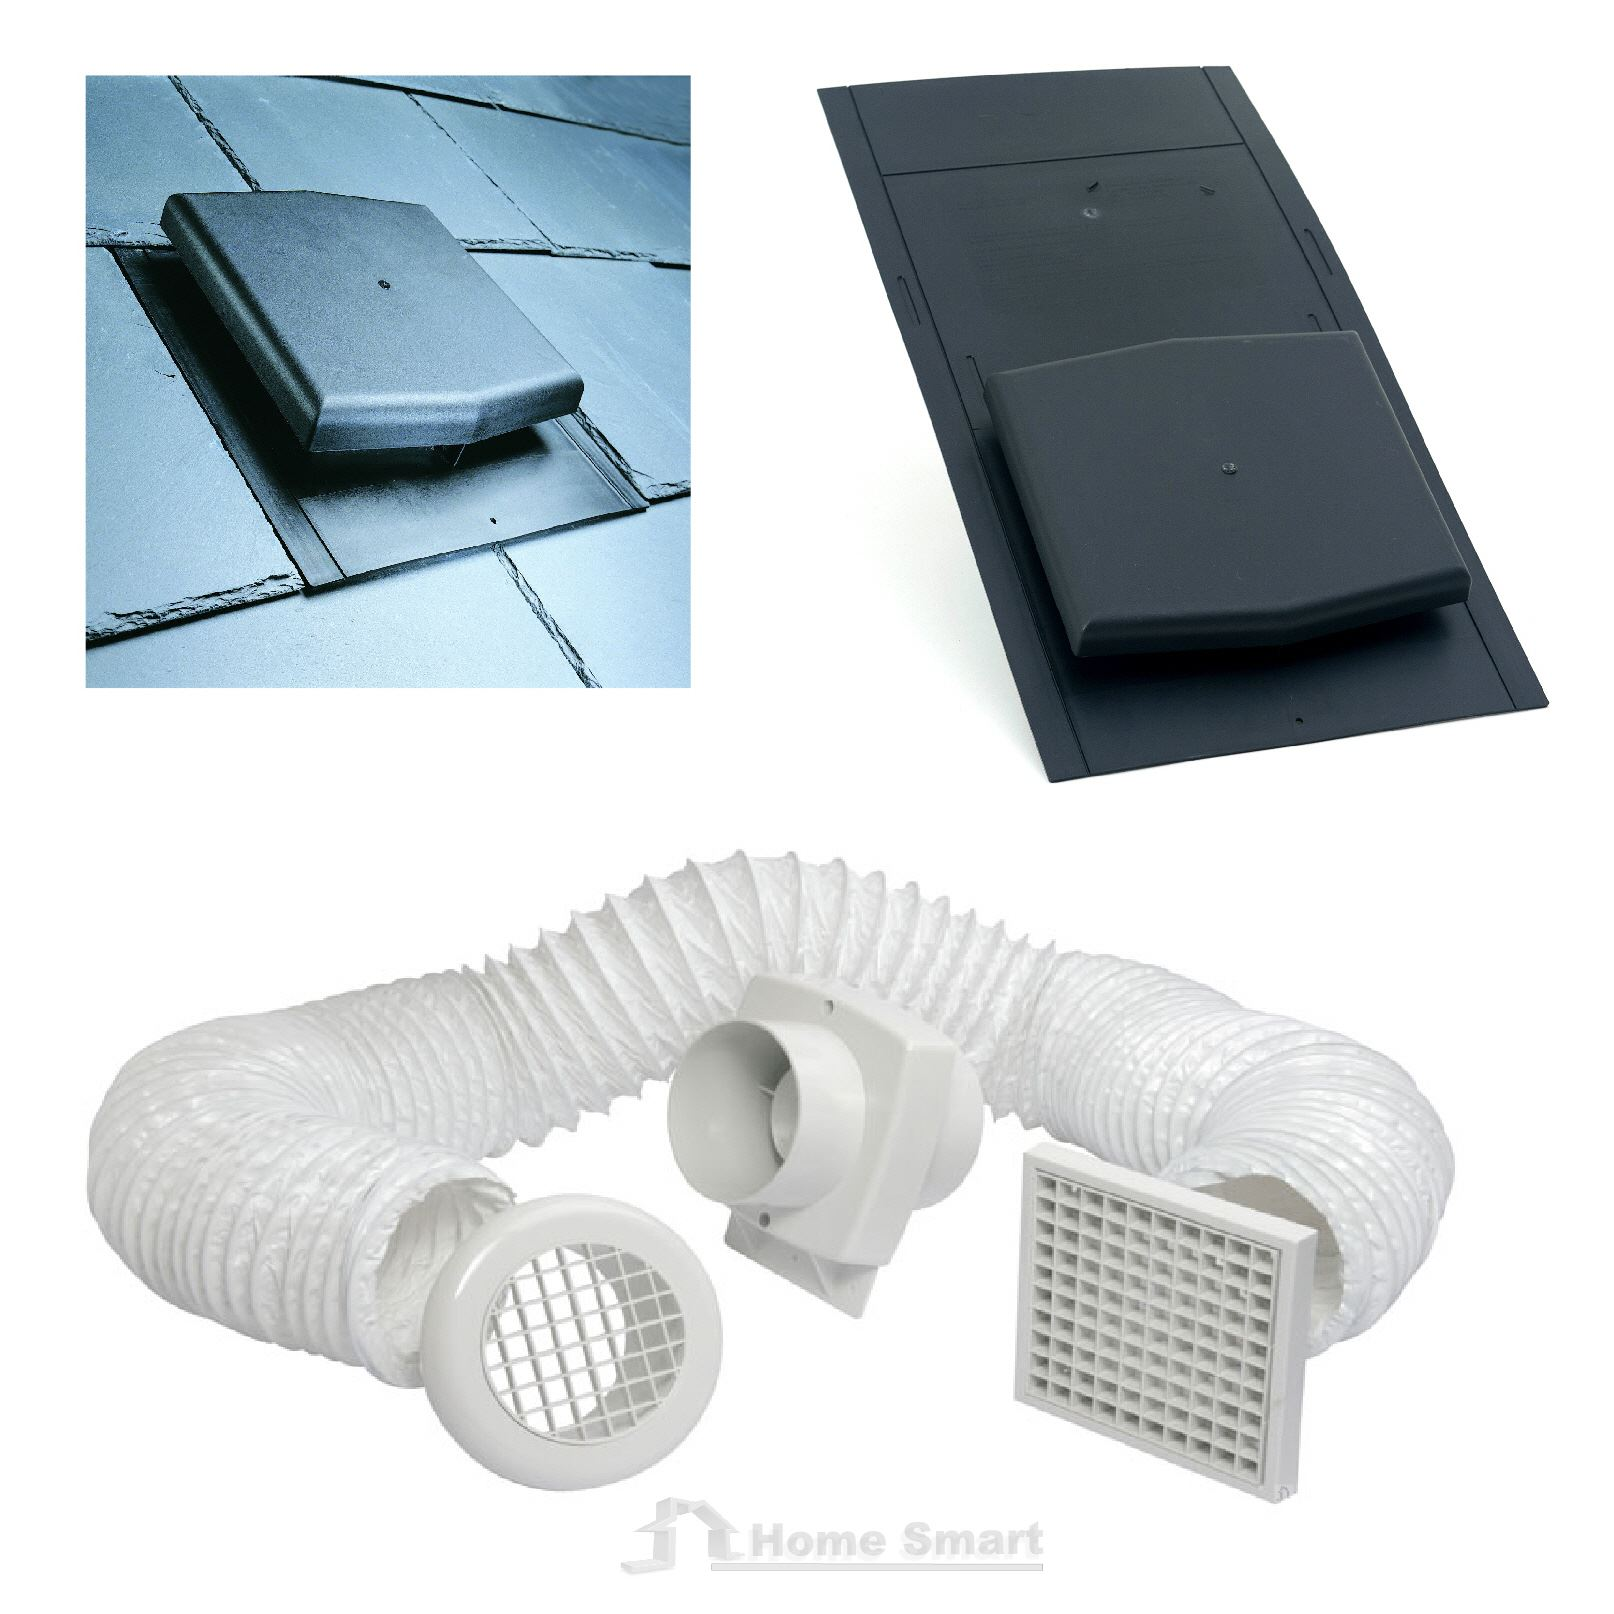 #3B6F90 Slate Roof Tile Vent & Inline Timer Extractor Shower Fan  Most Effective 6205 Roof Vent Fans pictures with 1614x1614 px on helpvideos.info - Air Conditioners, Air Coolers and more